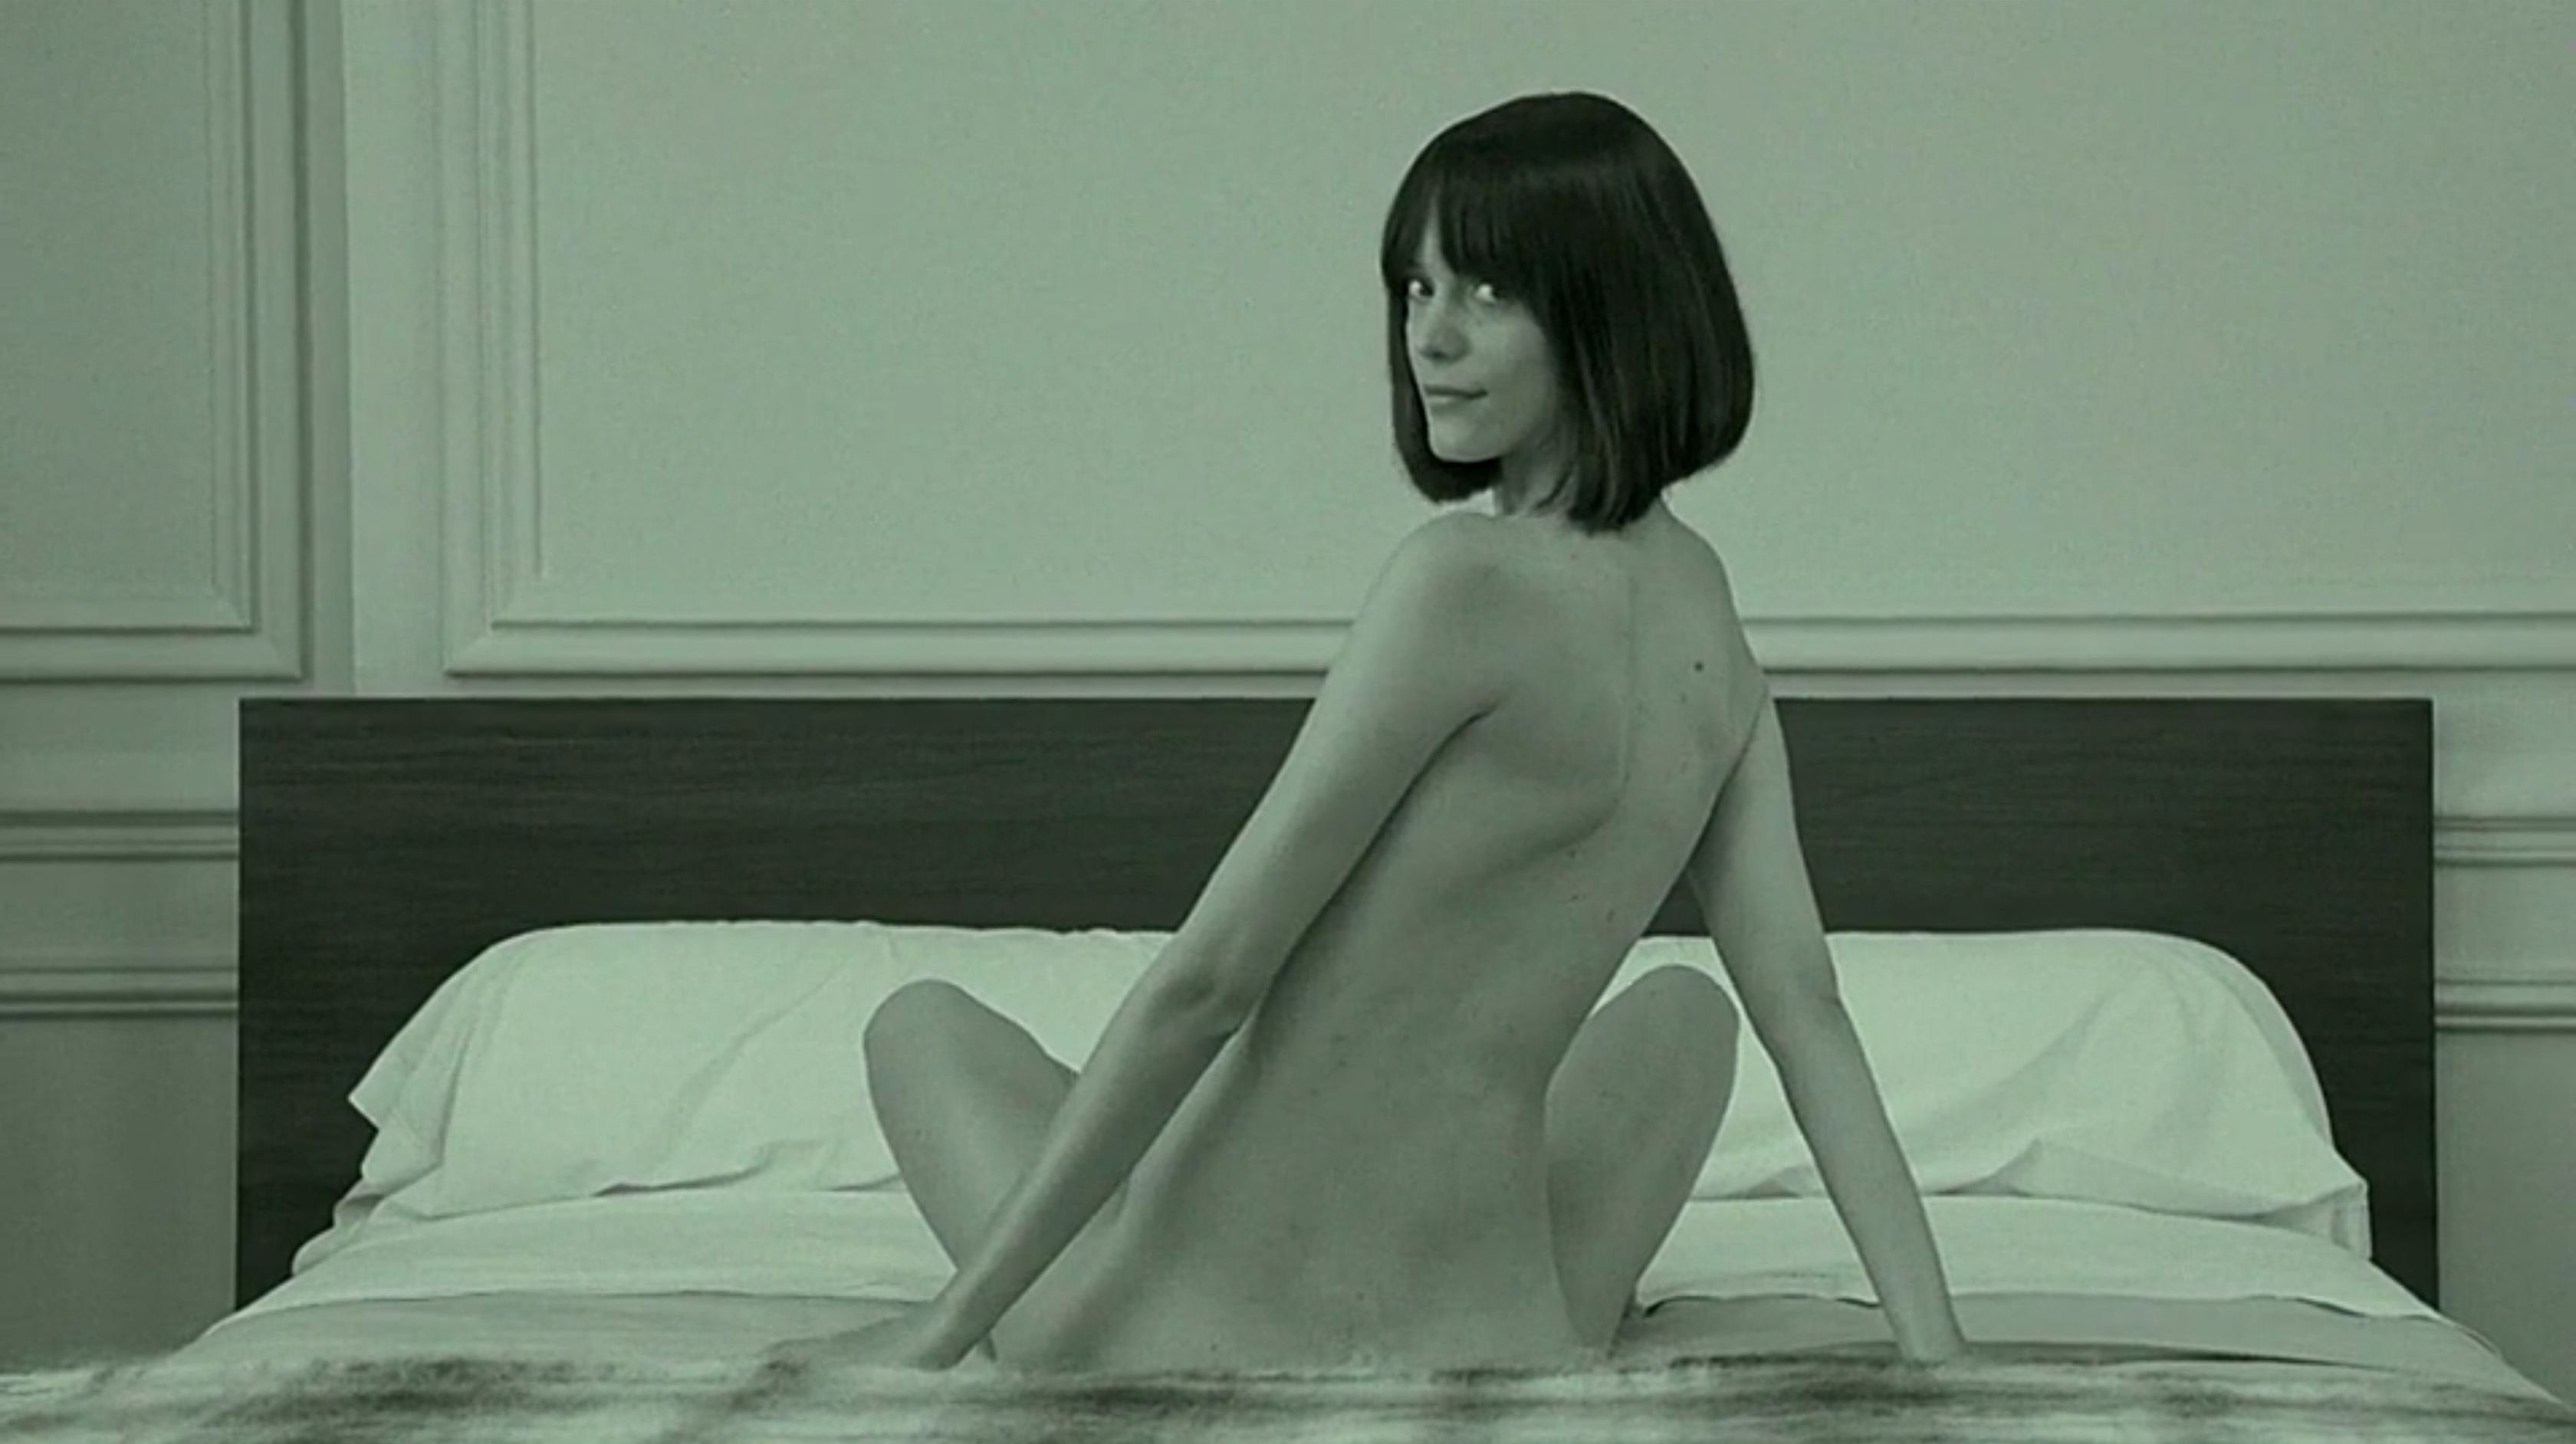 Stacy-Martin-Nude-Le-Redoutable-2017-7-The-Fappening-Blog.jpg